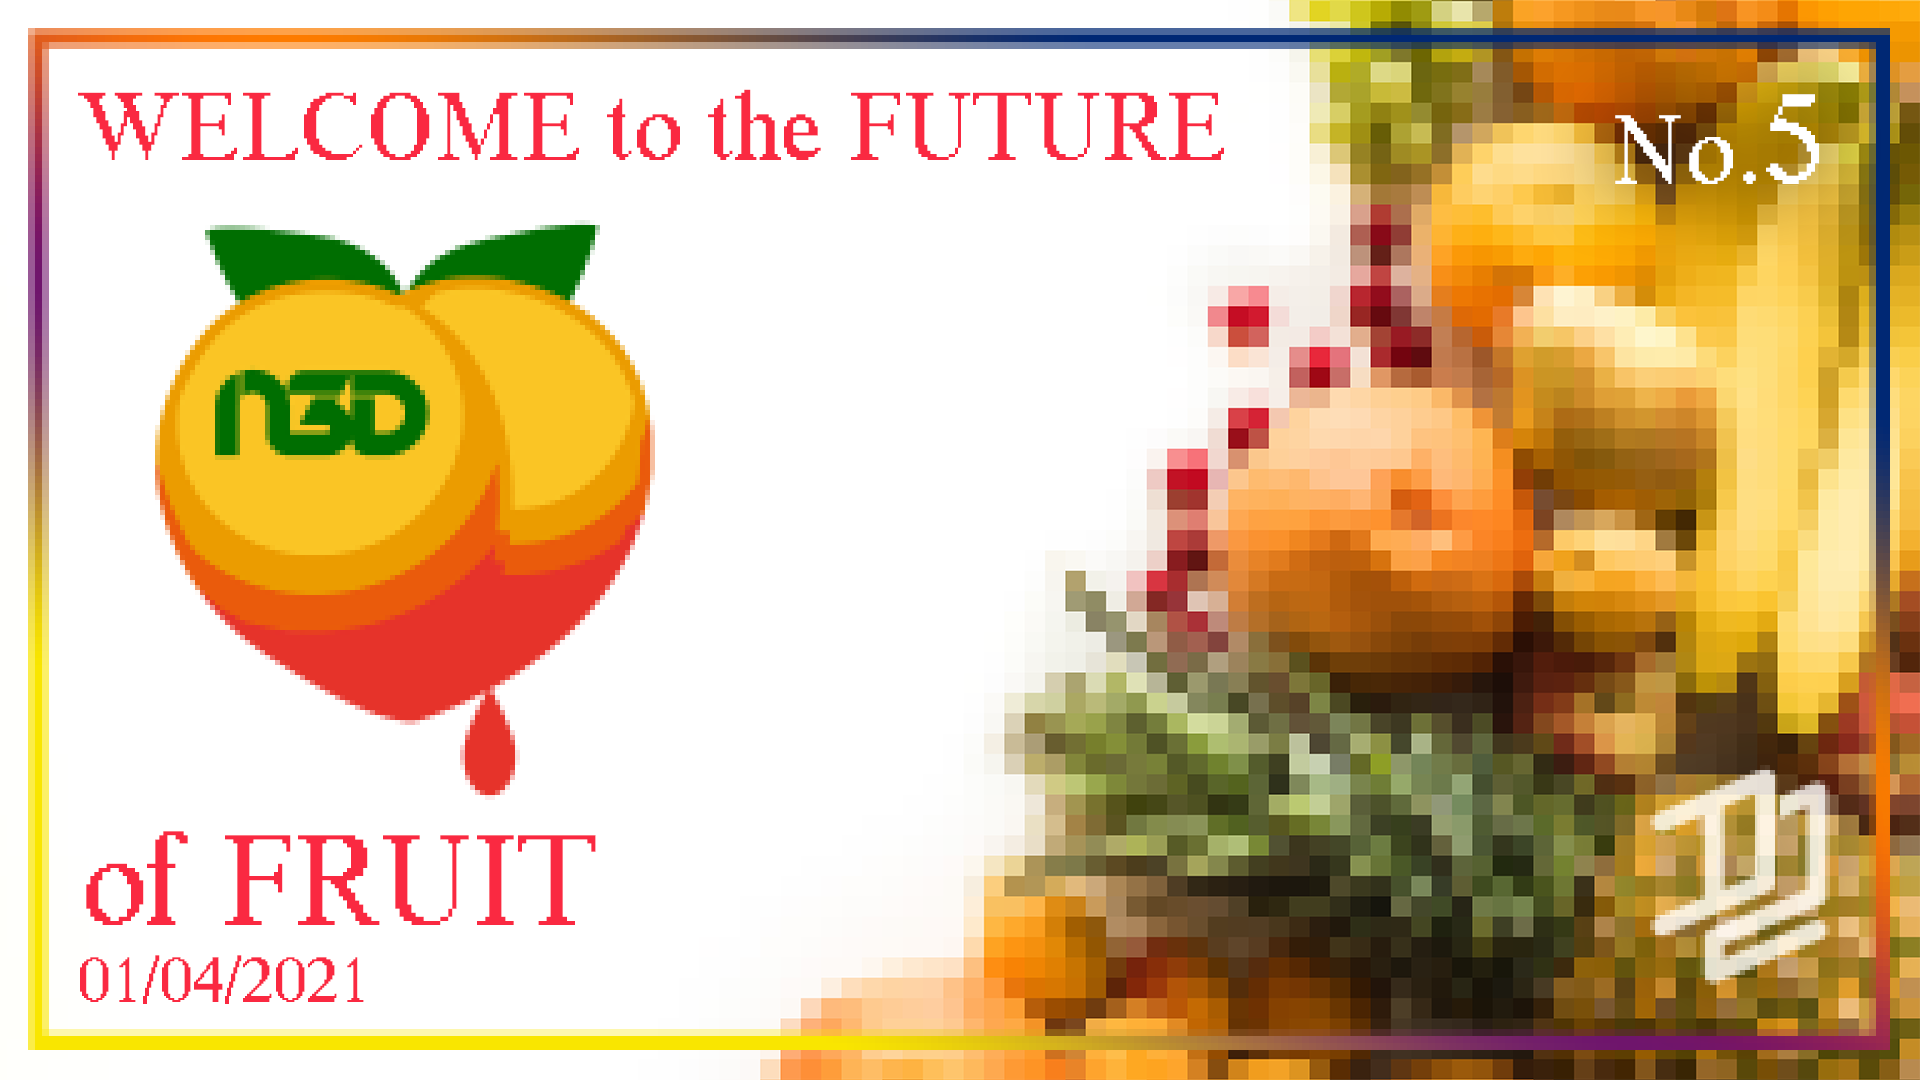 Narvalo 3d Future of Fruit